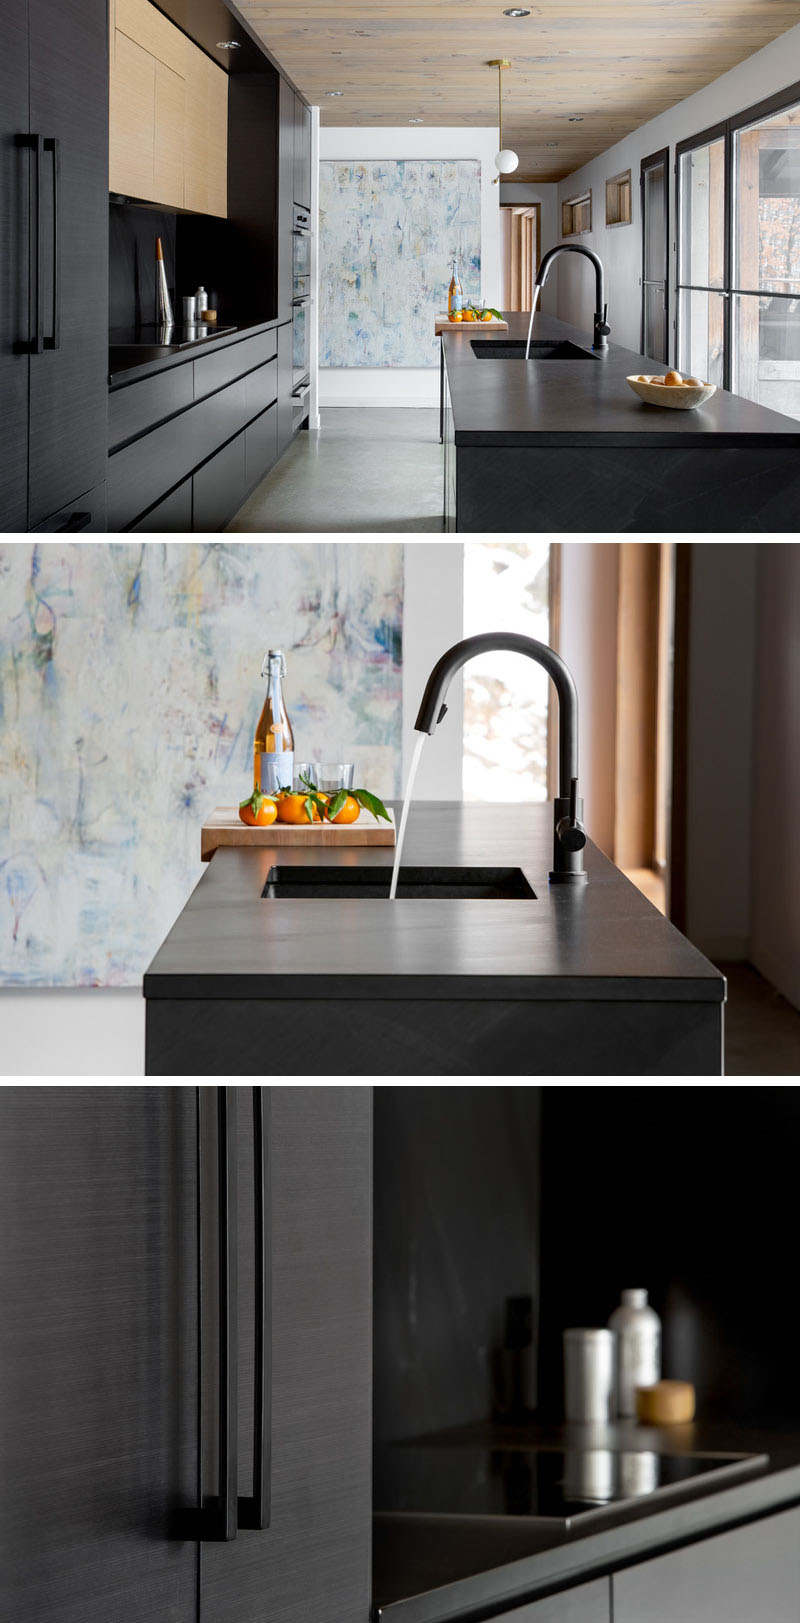 Interior designer Catlin Stothers completed a modern house interior with a new black kitchen.